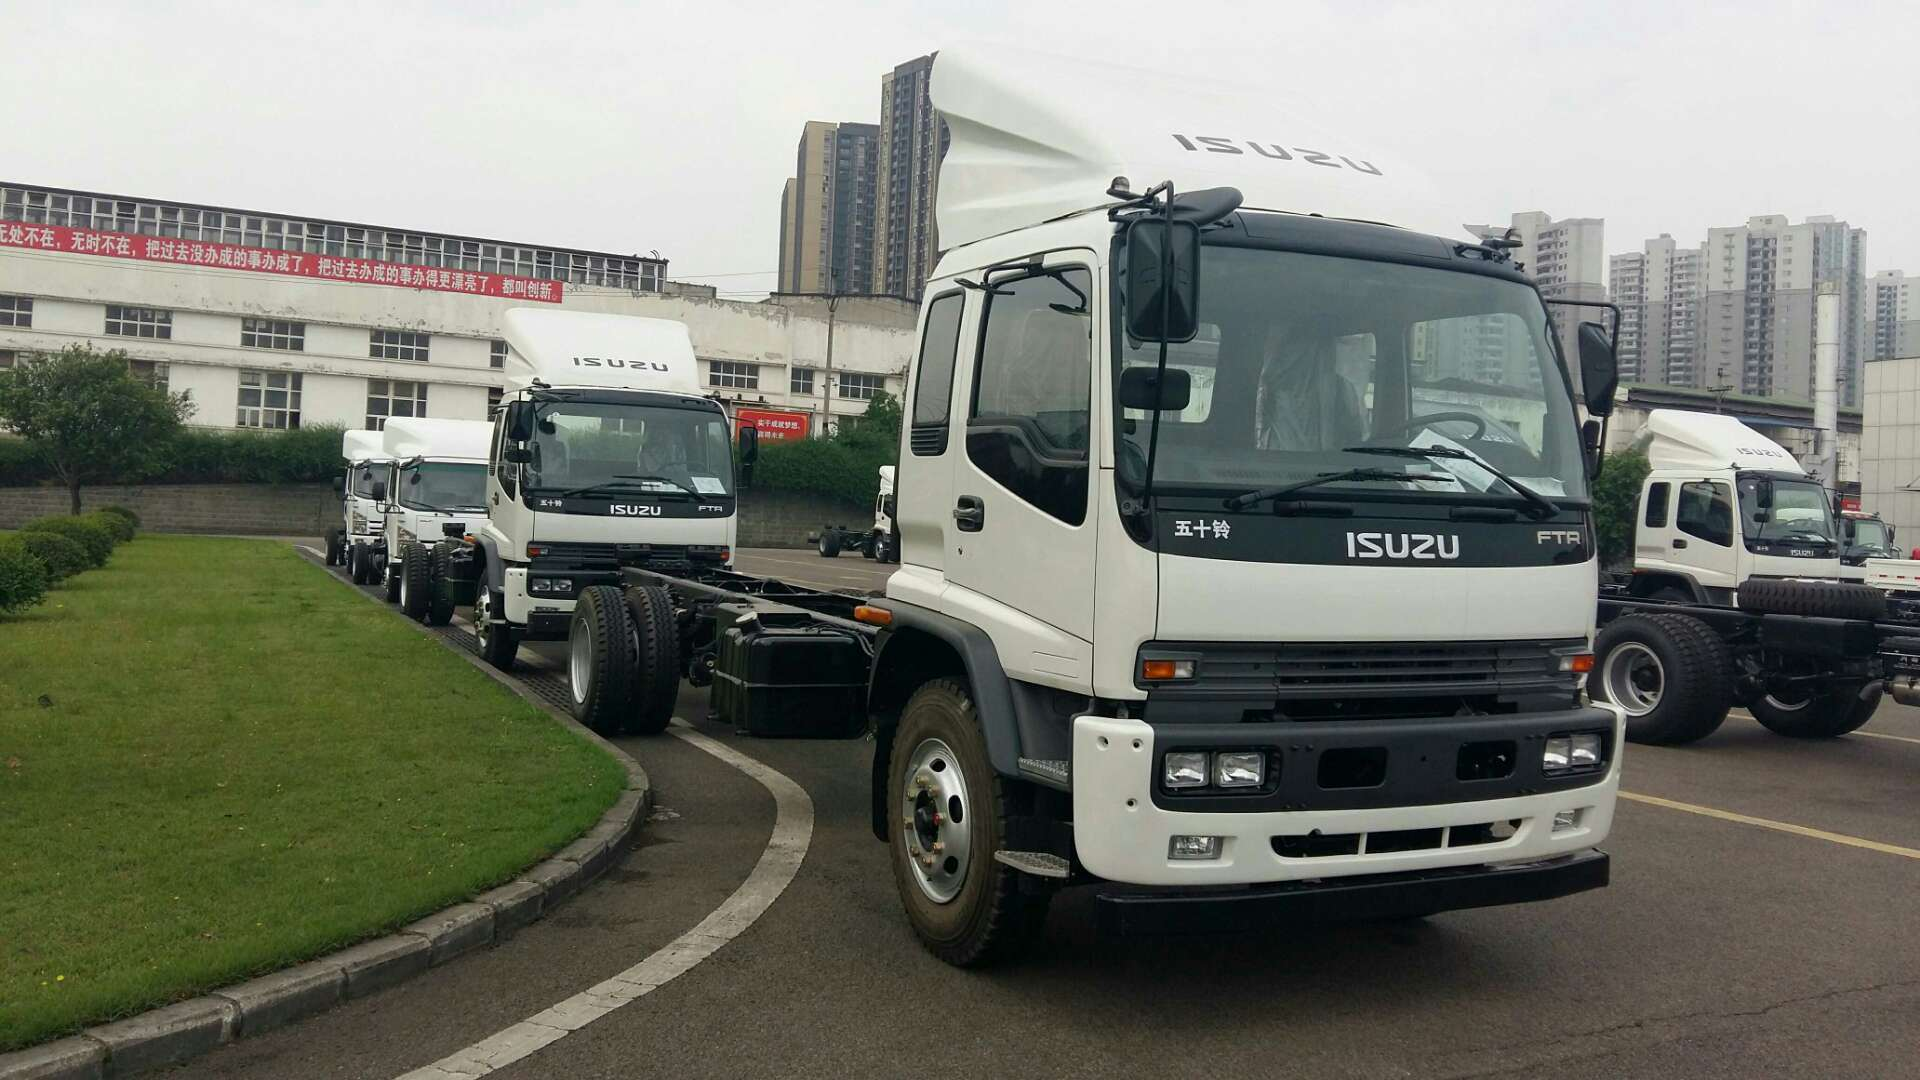 China New Isuzu Ftr Truck with 10 Ton Loading for Sale - China Isuzu Truck, Isuzu  Ftr